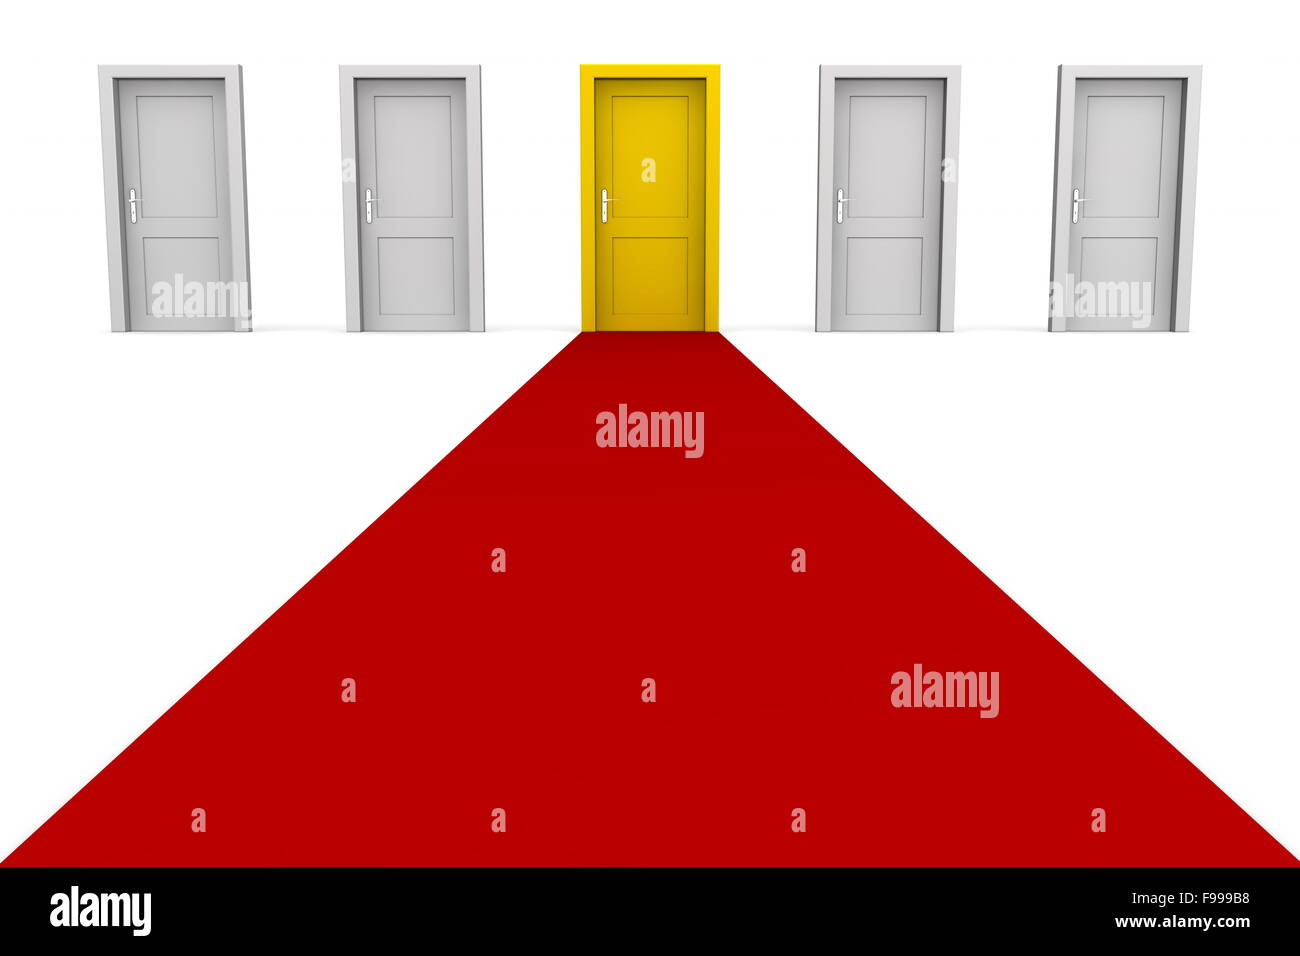 Five Doors and a Red Carpet - Yellow - Stock Image